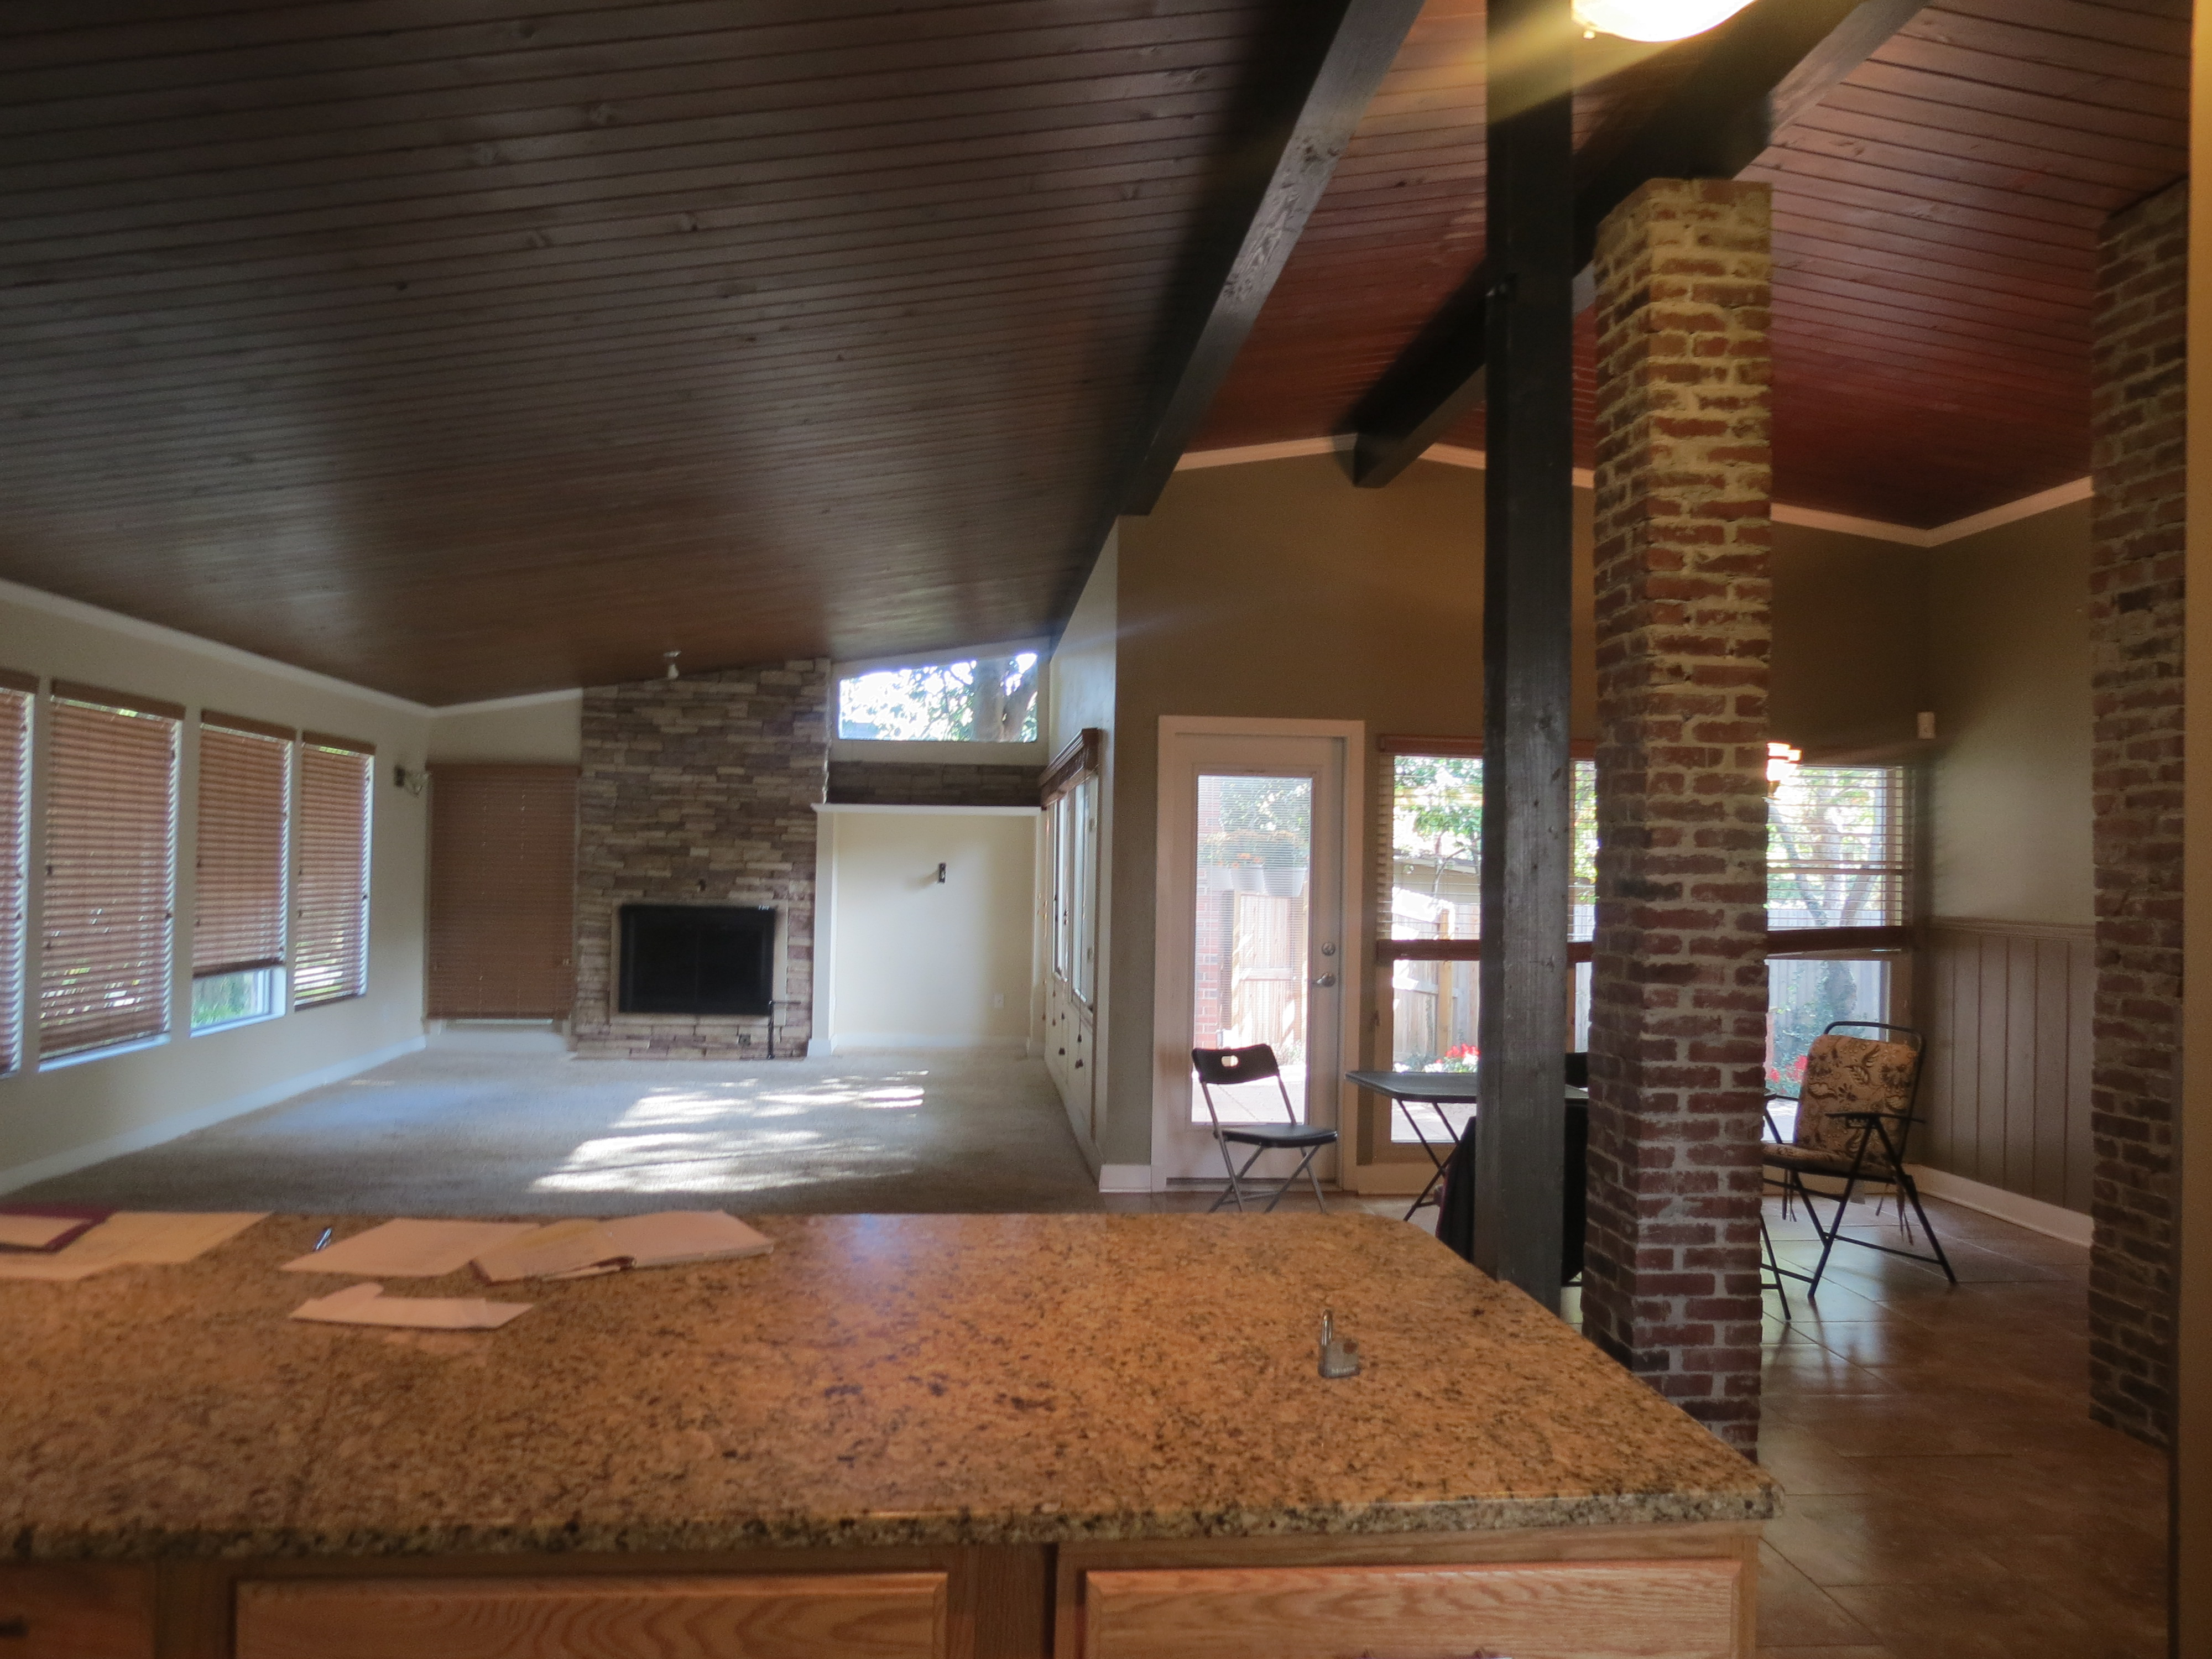 Mid century modern homes for sale in kansas city mo - Home modern